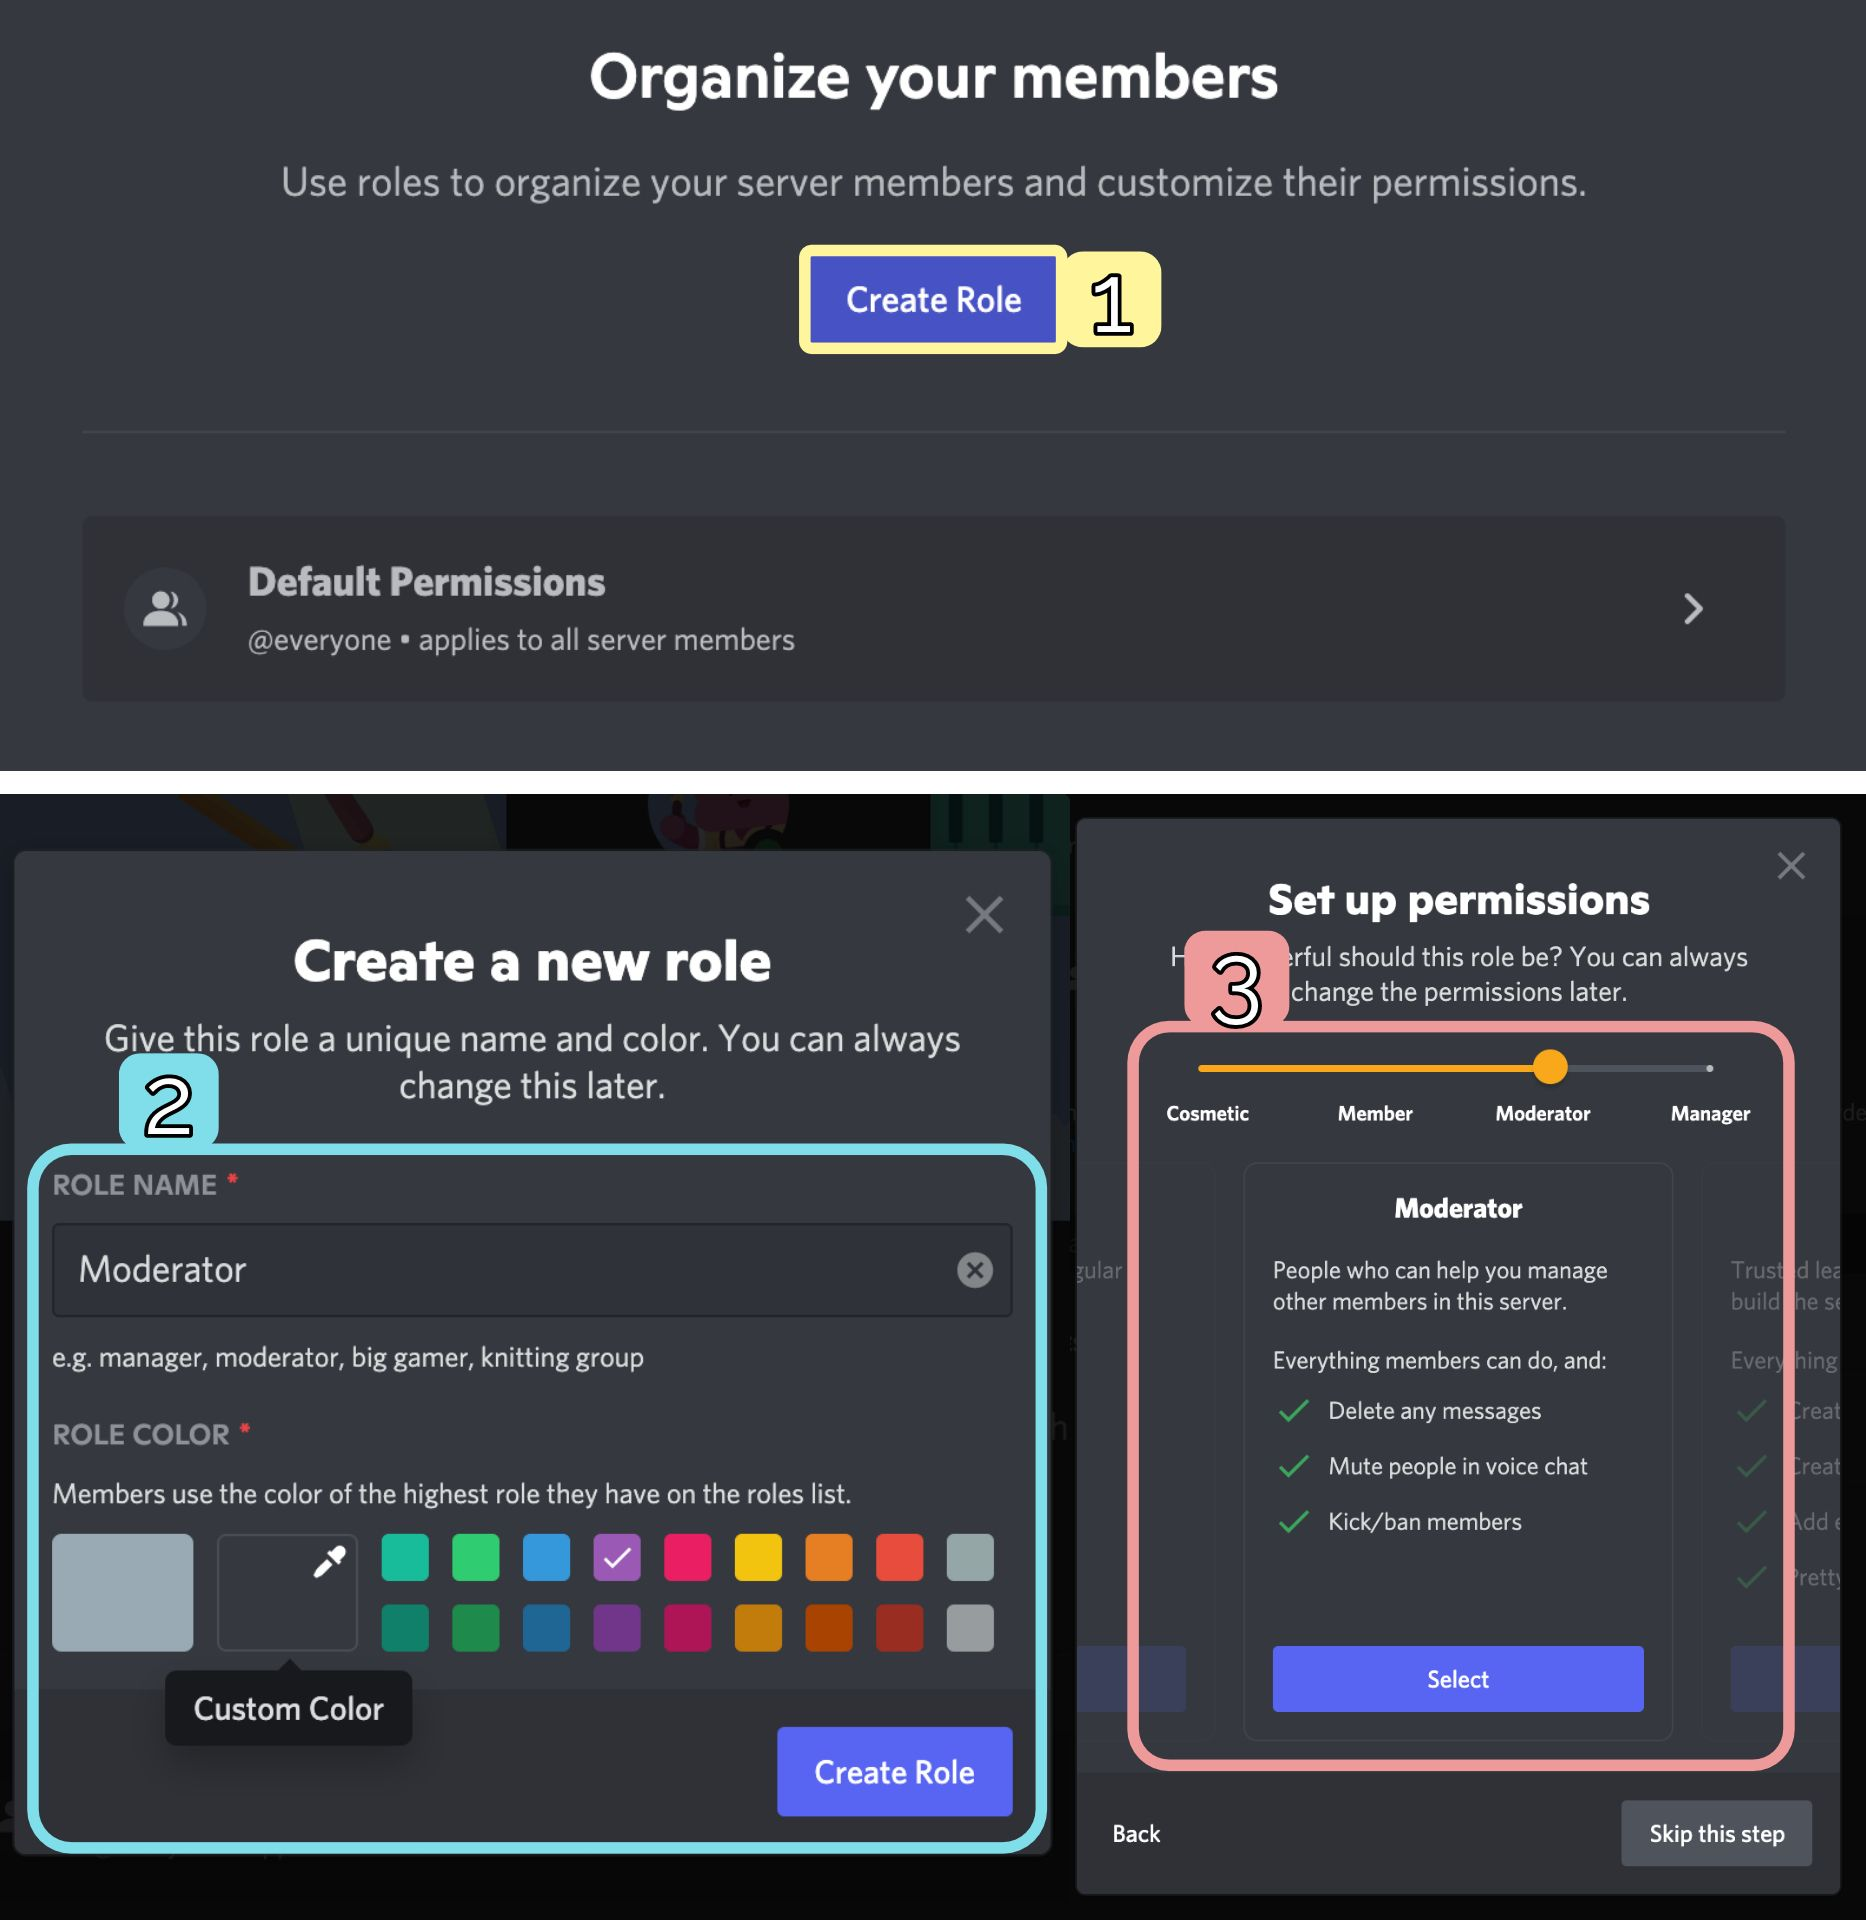 Screenshots showing how to add and customize new roles in a Discord server.